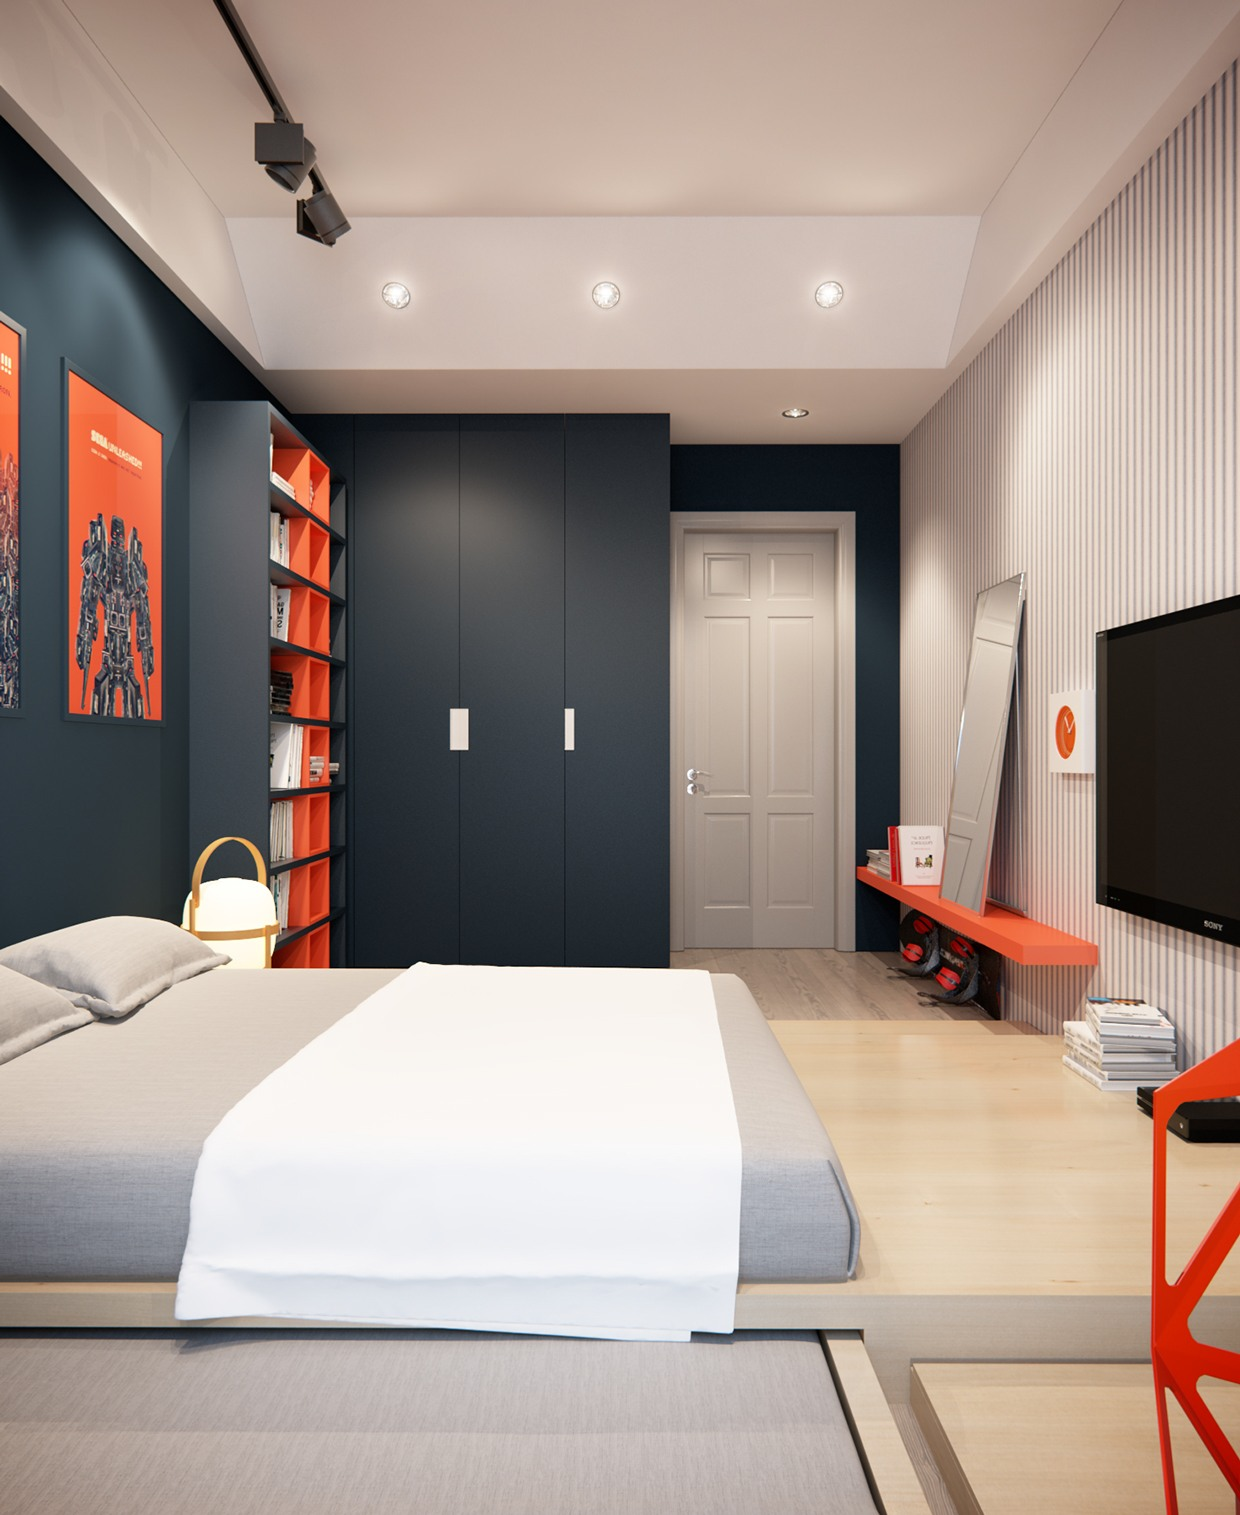 Bedroom Design Ideas Images A Stylish Apartment With Classic Design Features